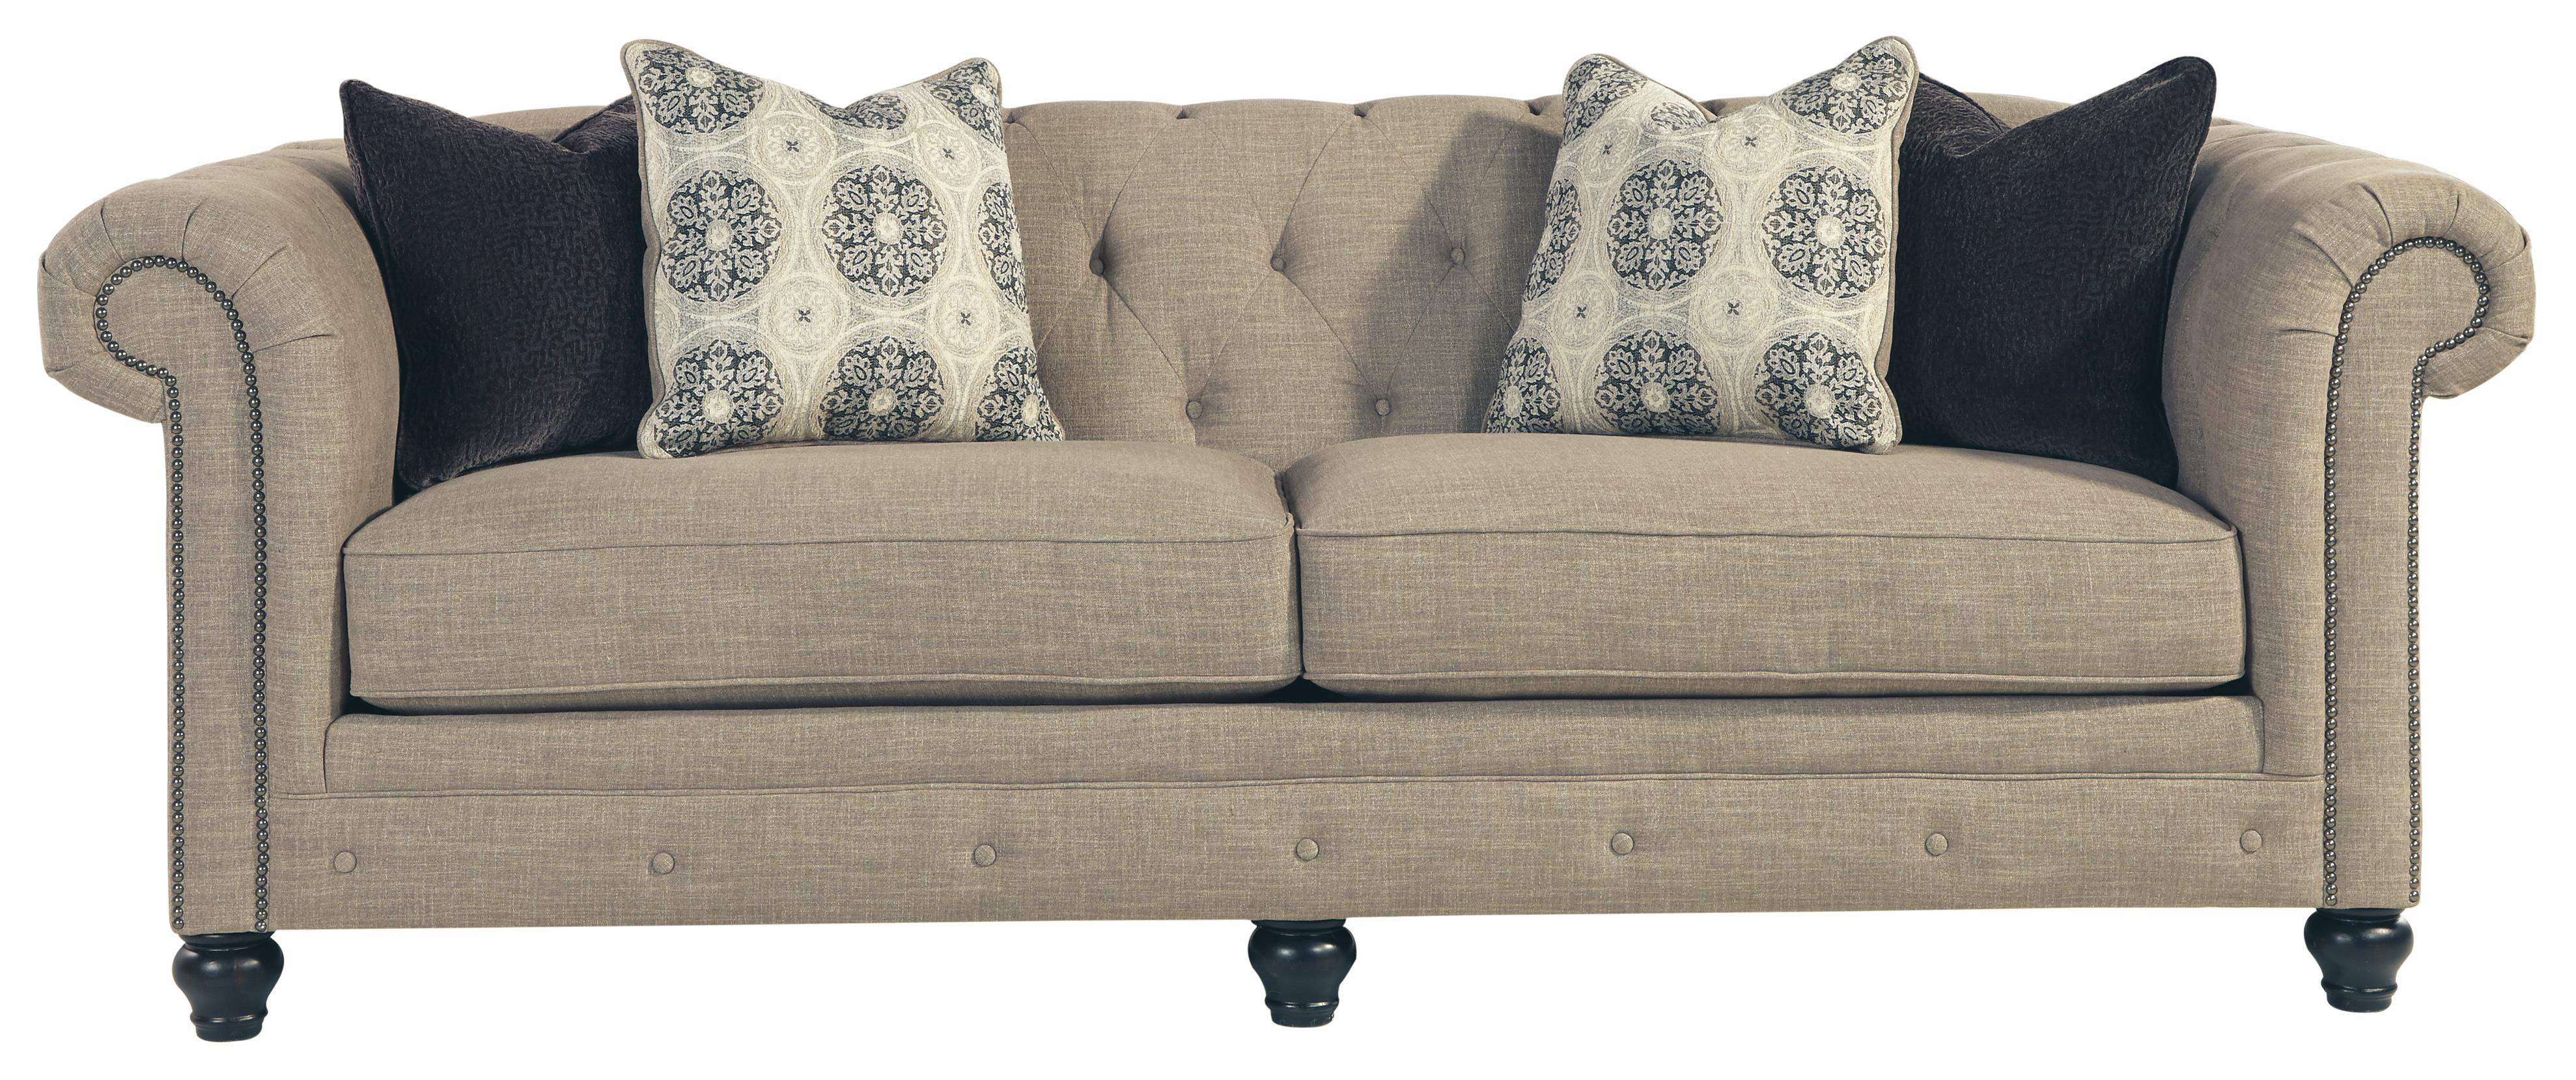 Benchcraft Azlyn Transitional Chesterfield Sofa with Linen Blend